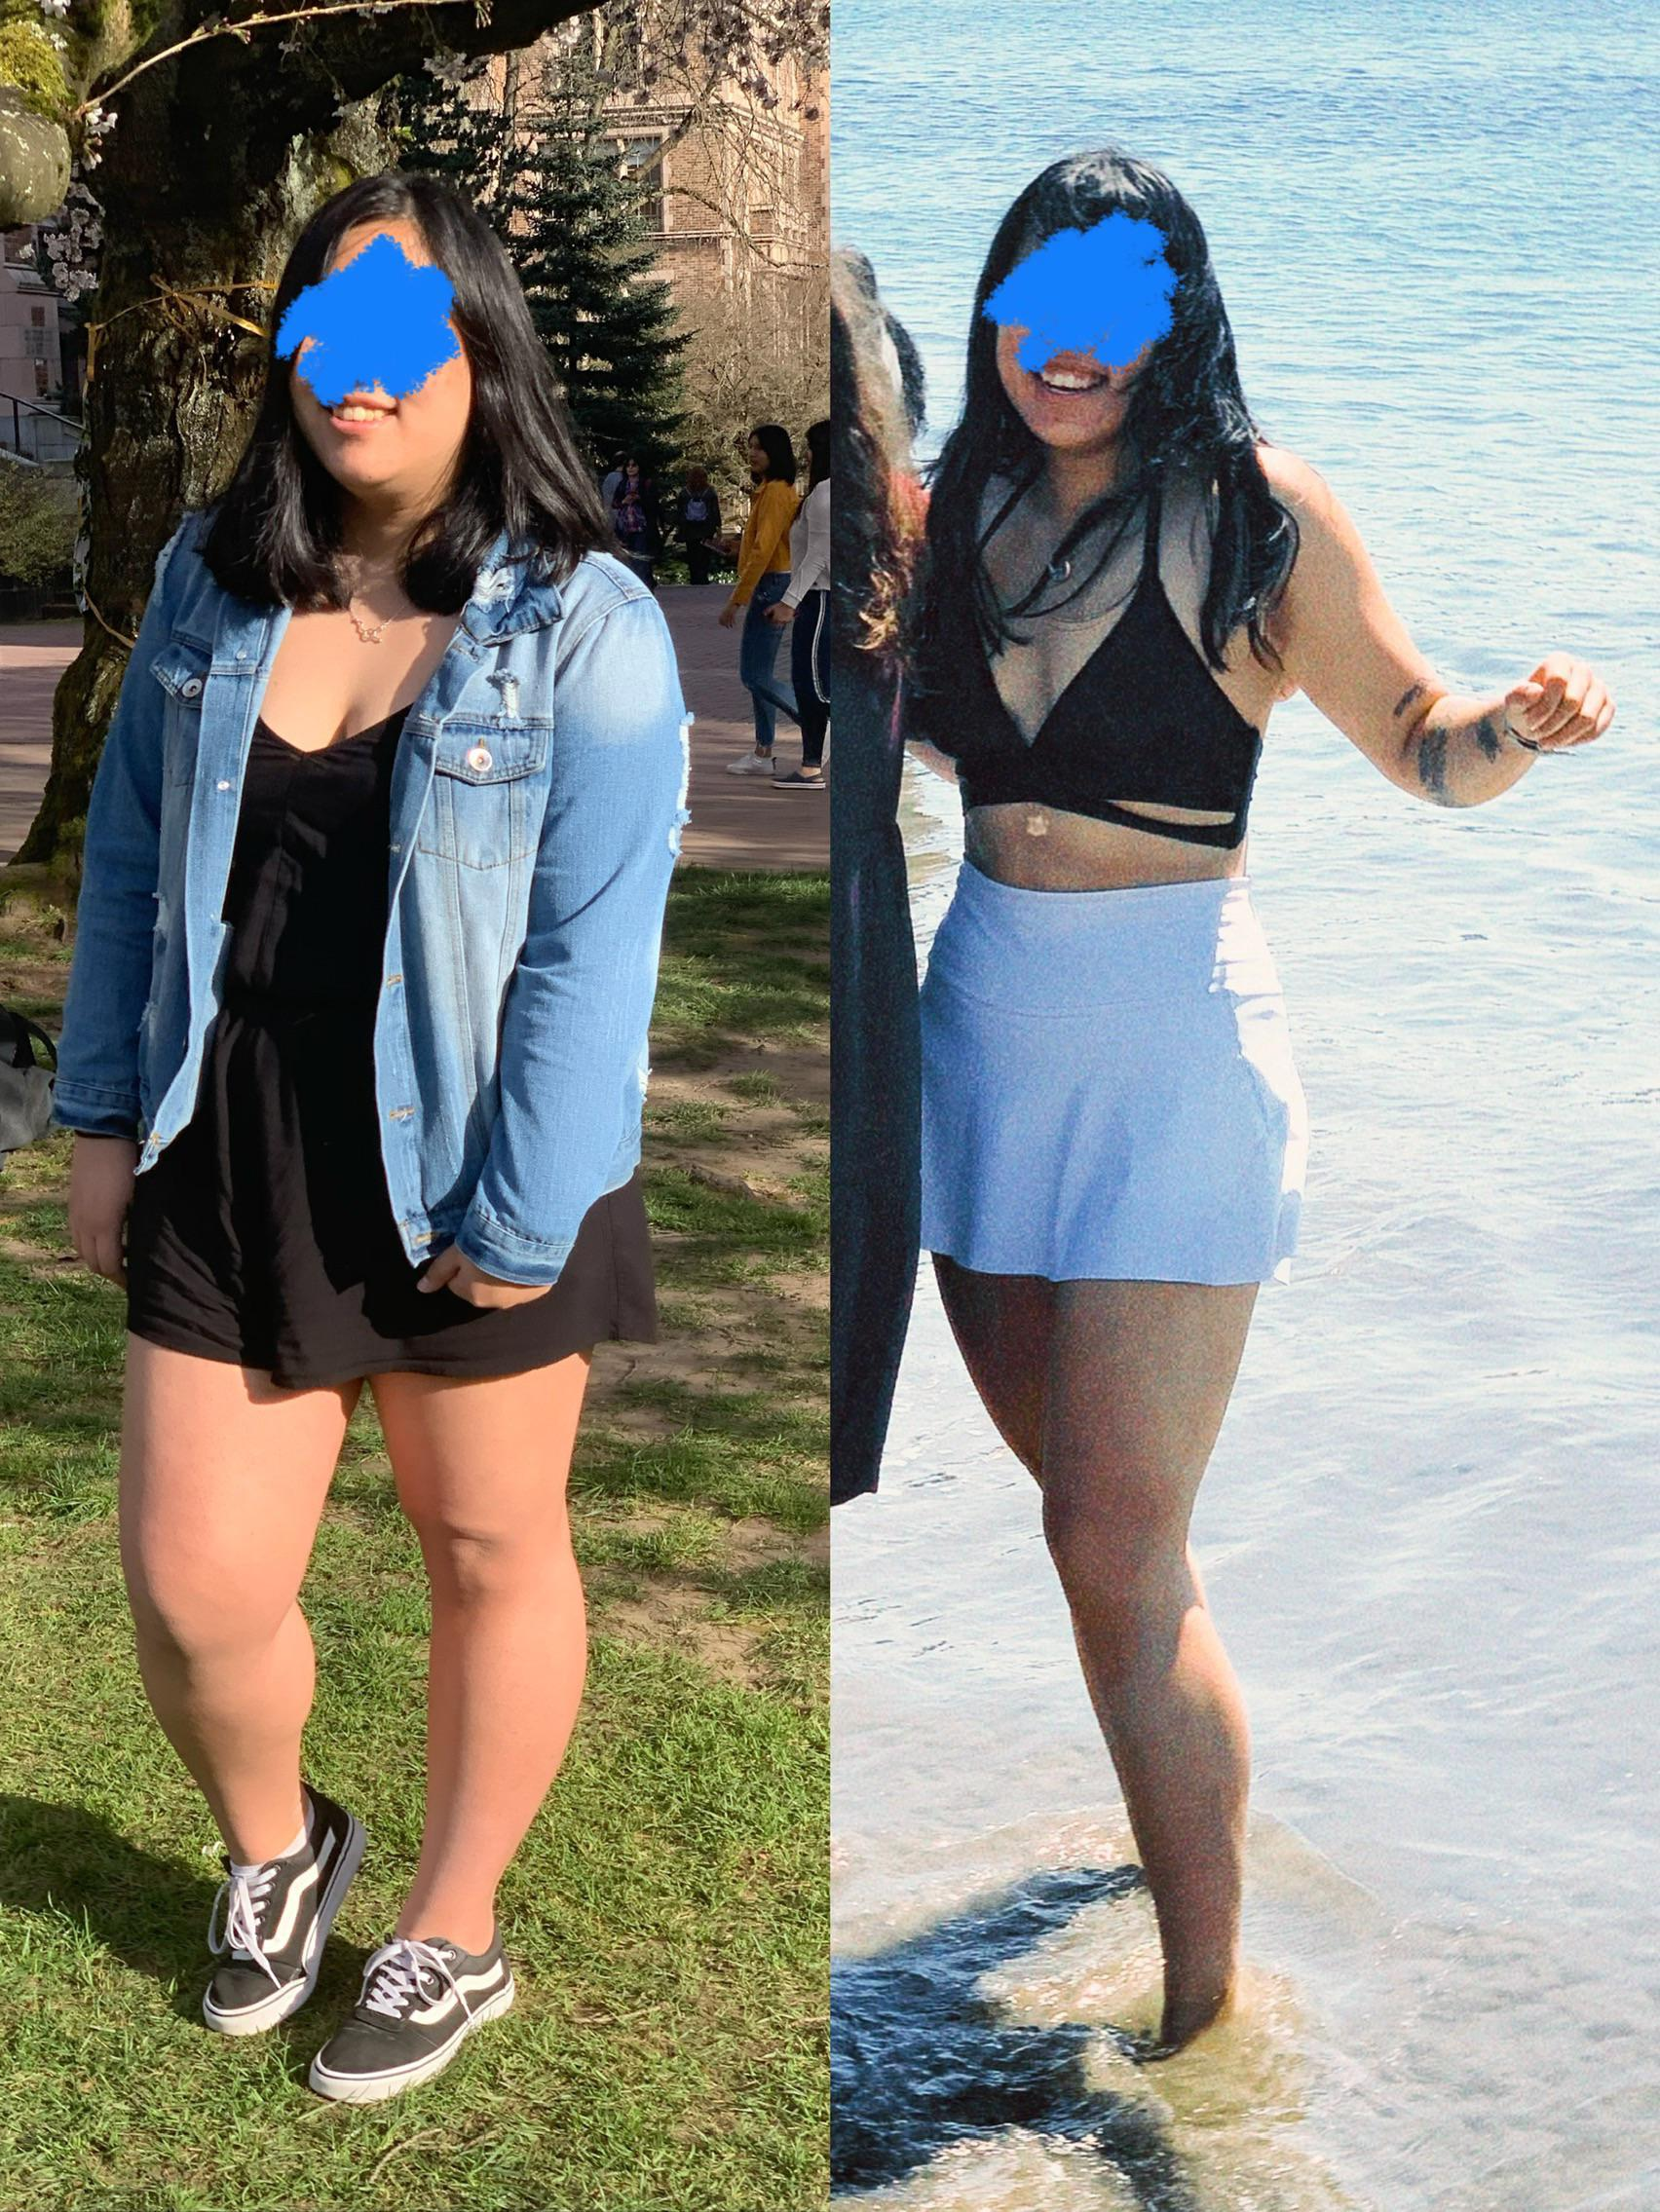 5 foot 7 Female Before and After 57 lbs Fat Loss 219 lbs to 162 lbs